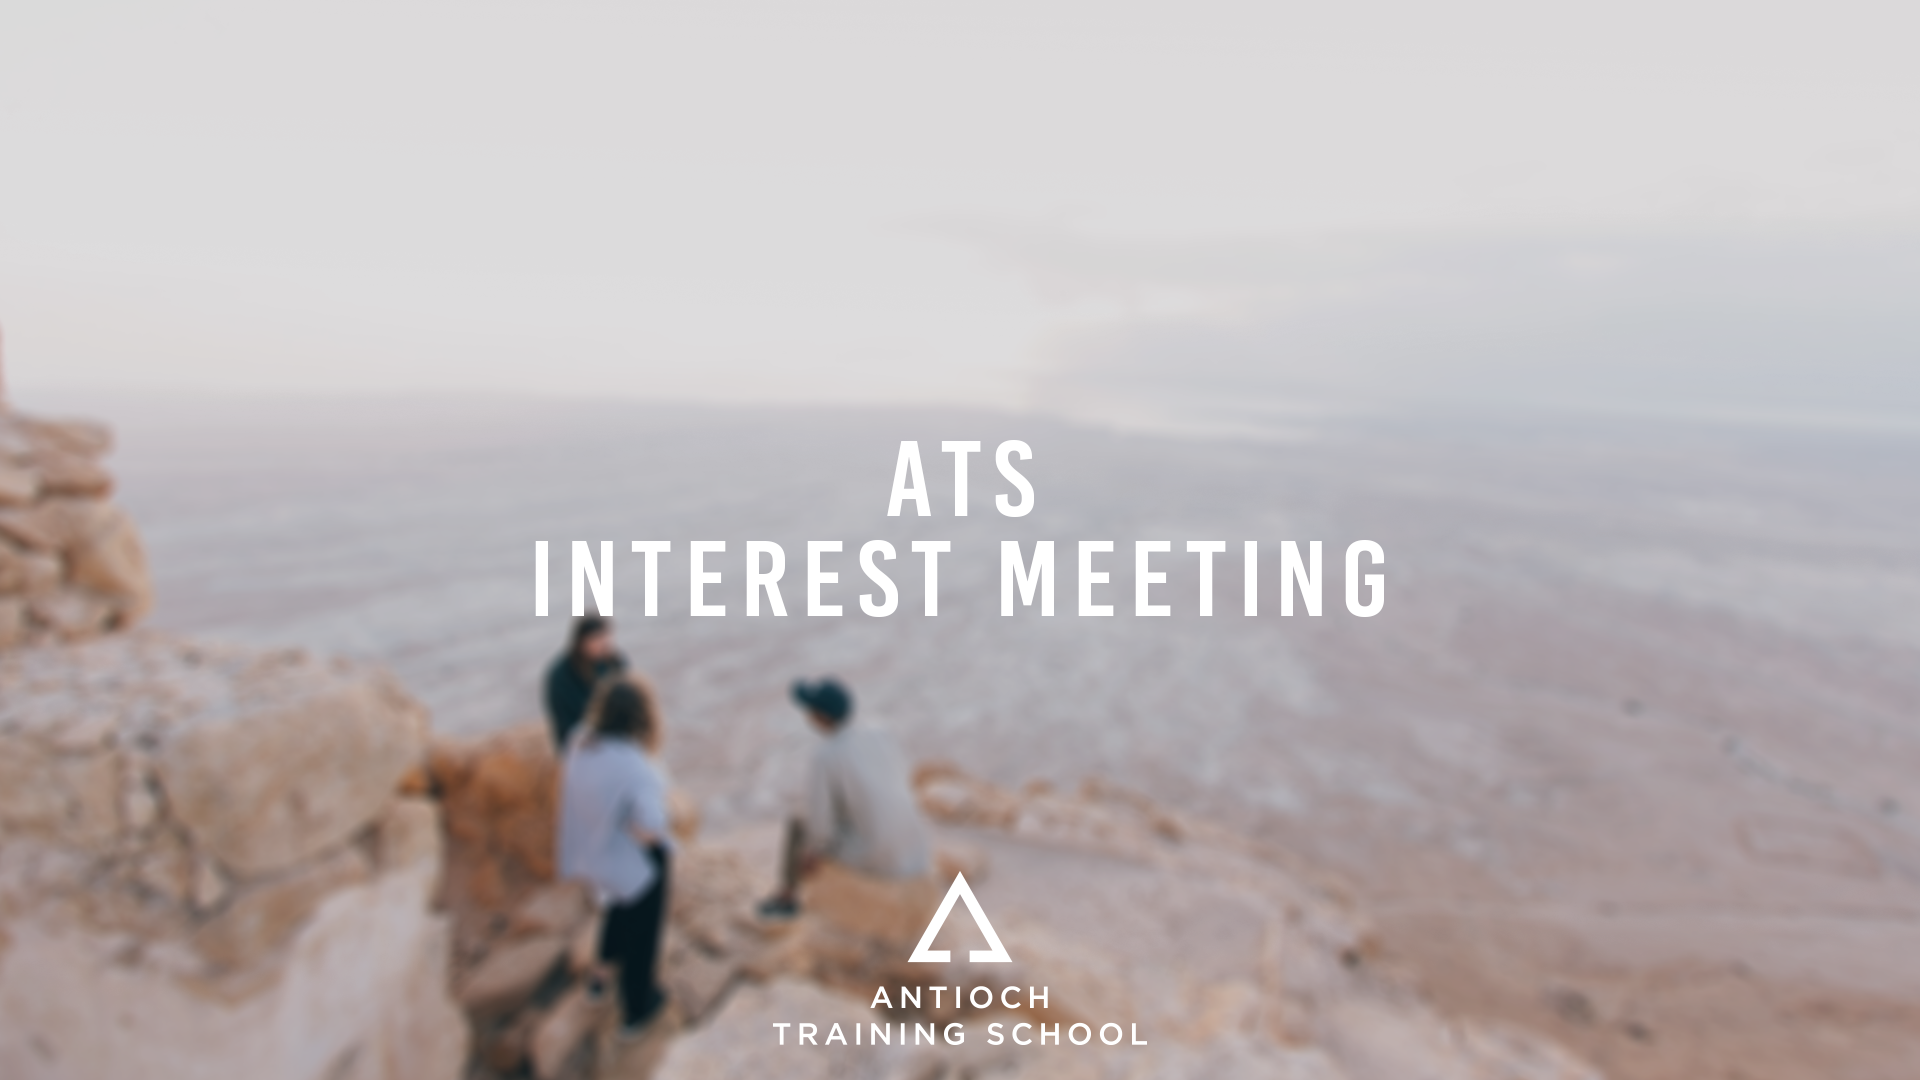 We are having an ATS interest meeting April 8th at 11 AM in the studio. Antioch Training School is an intense, fast paced, dedicated 10-month adventure where students discover spiritual identity, learn to walk in daily friendship and intimacy with Jesus, and embrace the values of the Kingdom of God. If you would like to learn more information about how you can get started in taking a deeper step in your journey with God, then do not miss out!